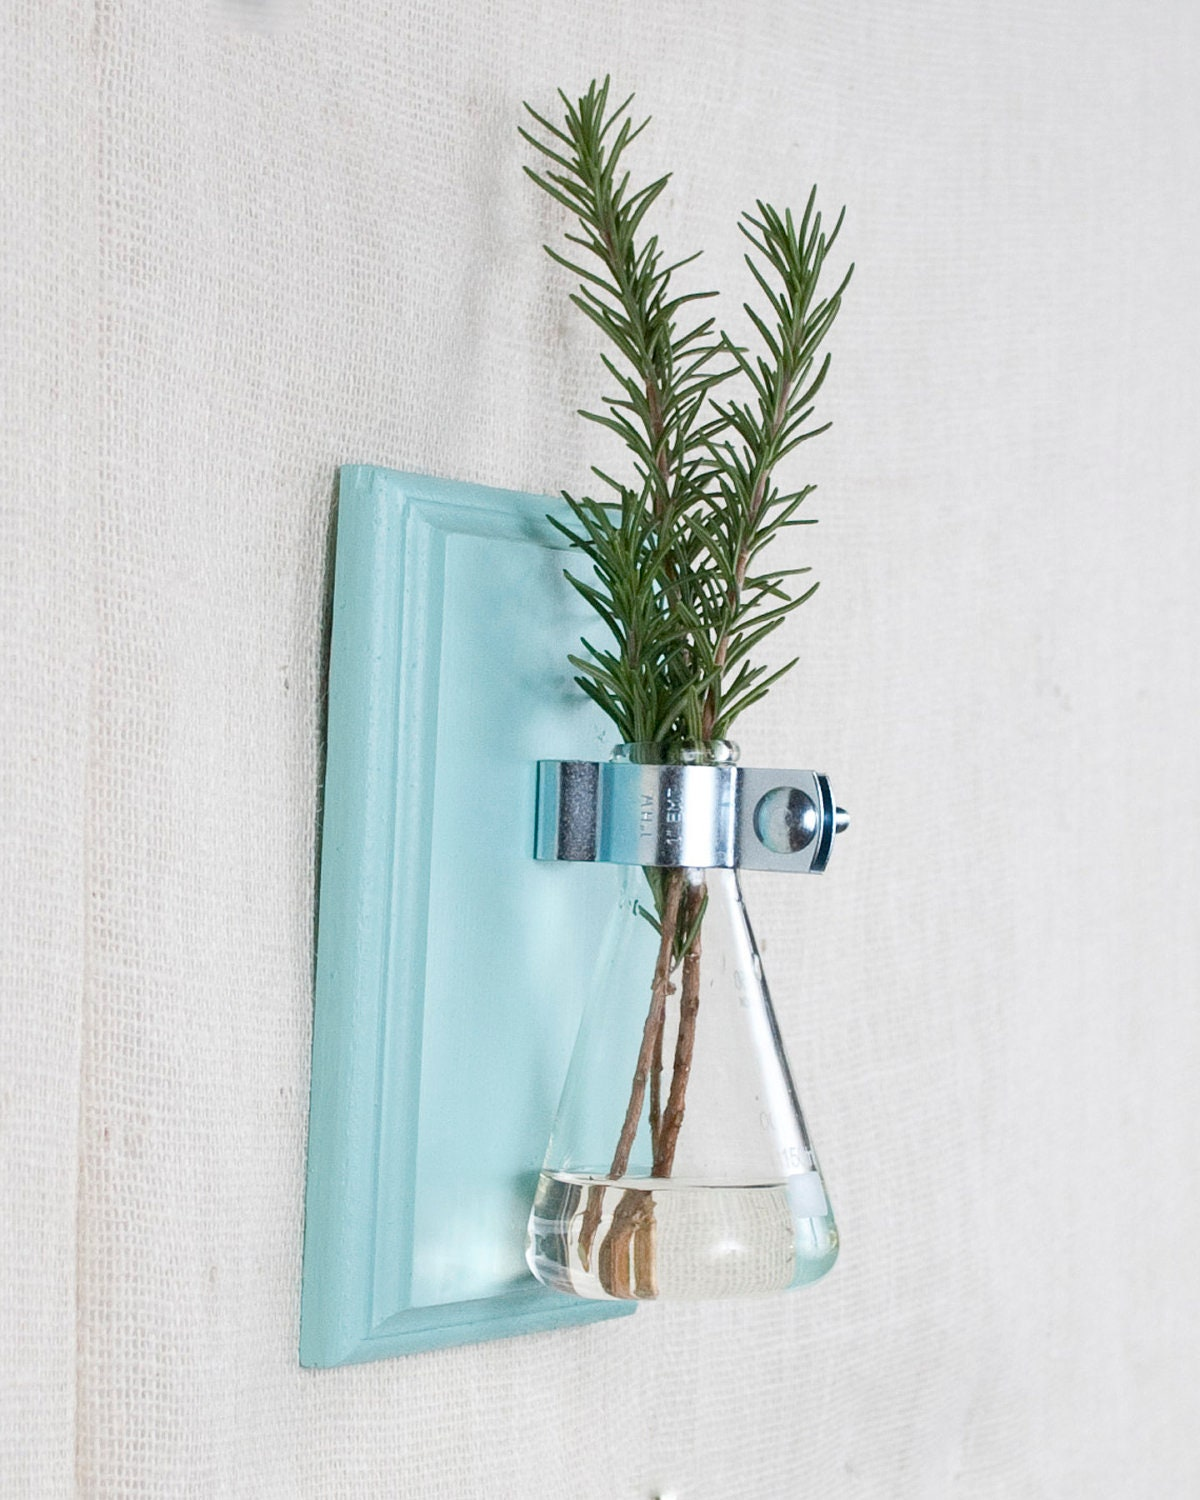 Wall Vase Set Blue Hanging Vase Bud Vase Gift Set by AnotherCup